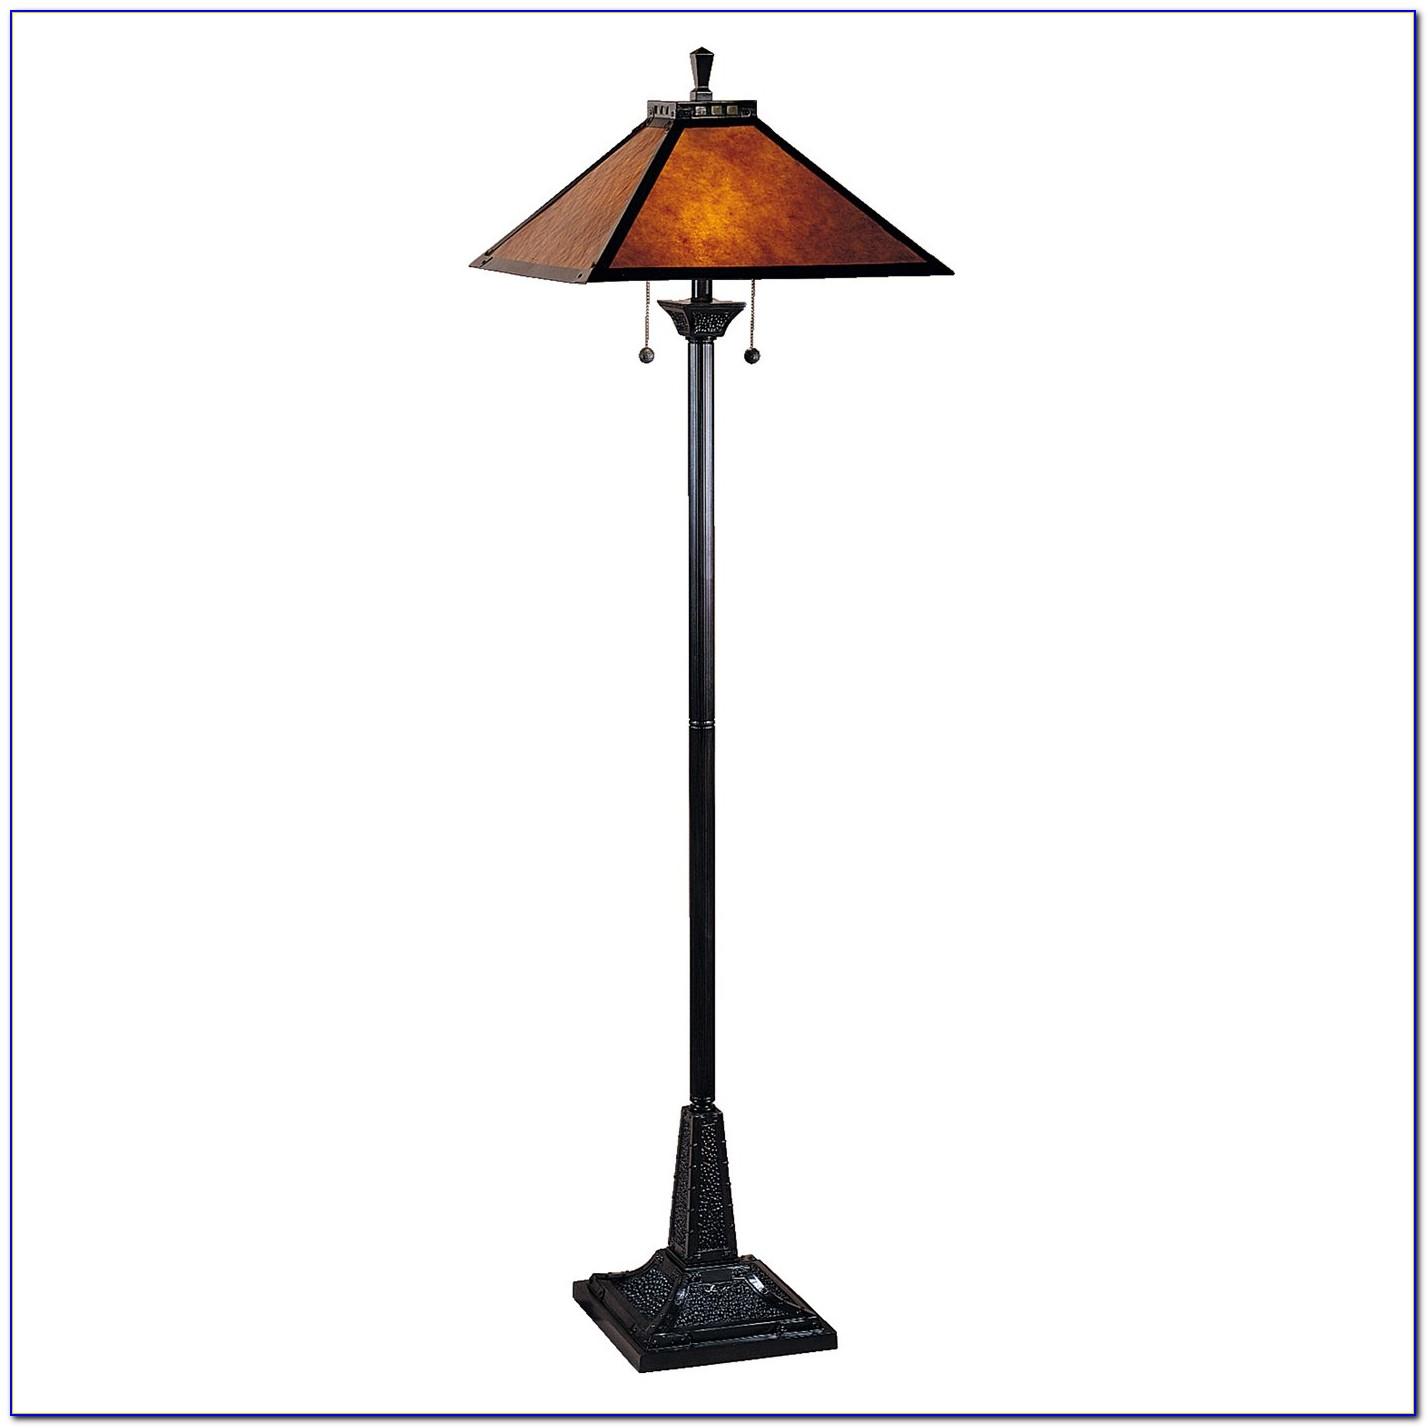 Dale Tiffany Peacock Floor Lamp